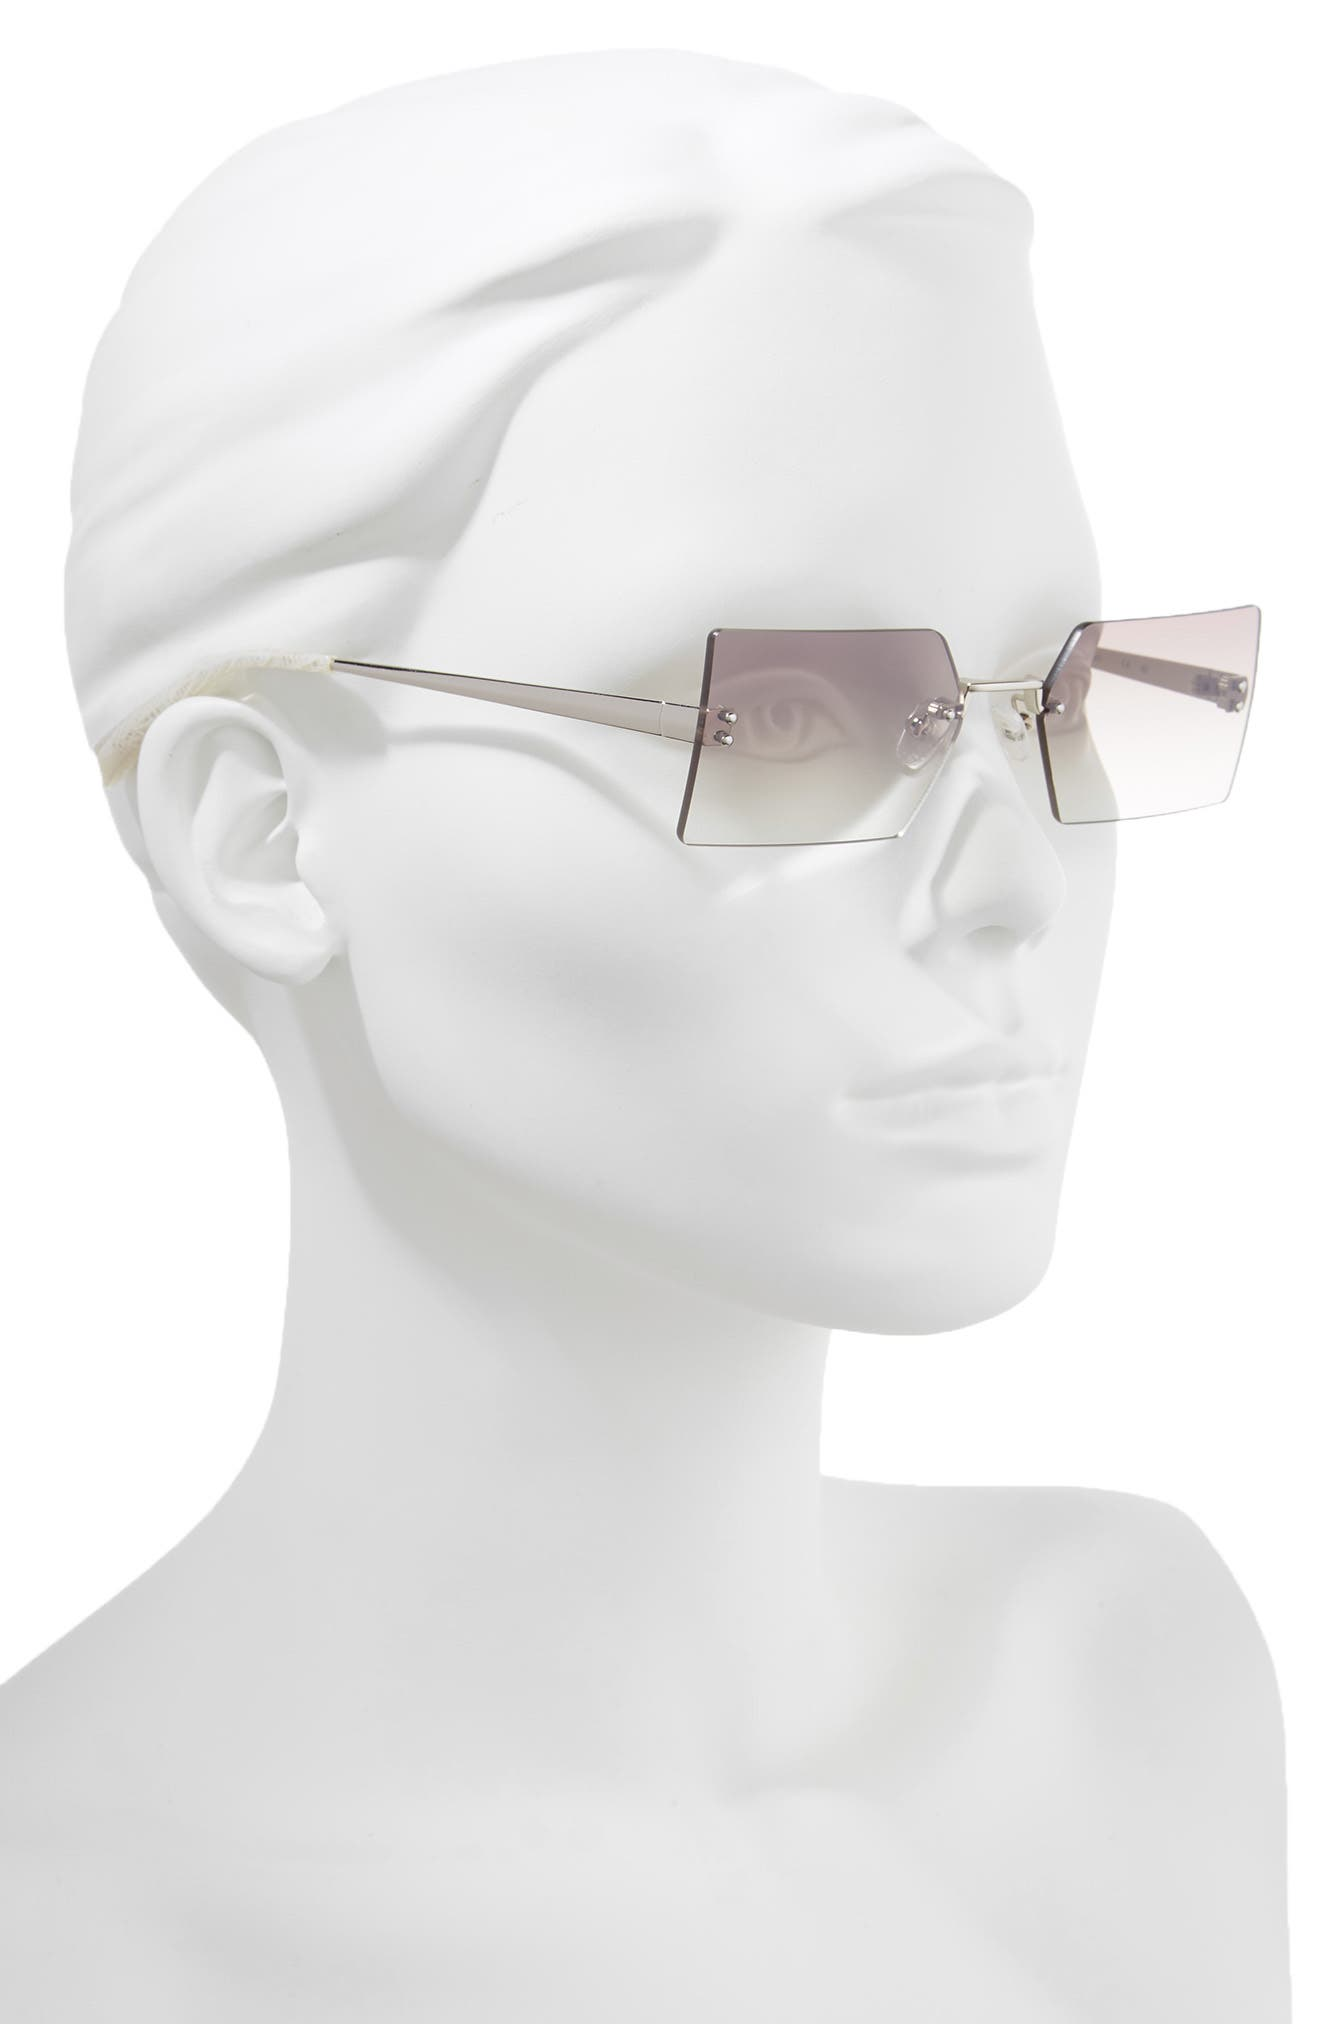 Grace 53mm Rimless Rectangular Sunglasses,                             Alternate thumbnail 2, color,                             SILVER/ BROWN/ CLEAR GRADIENT